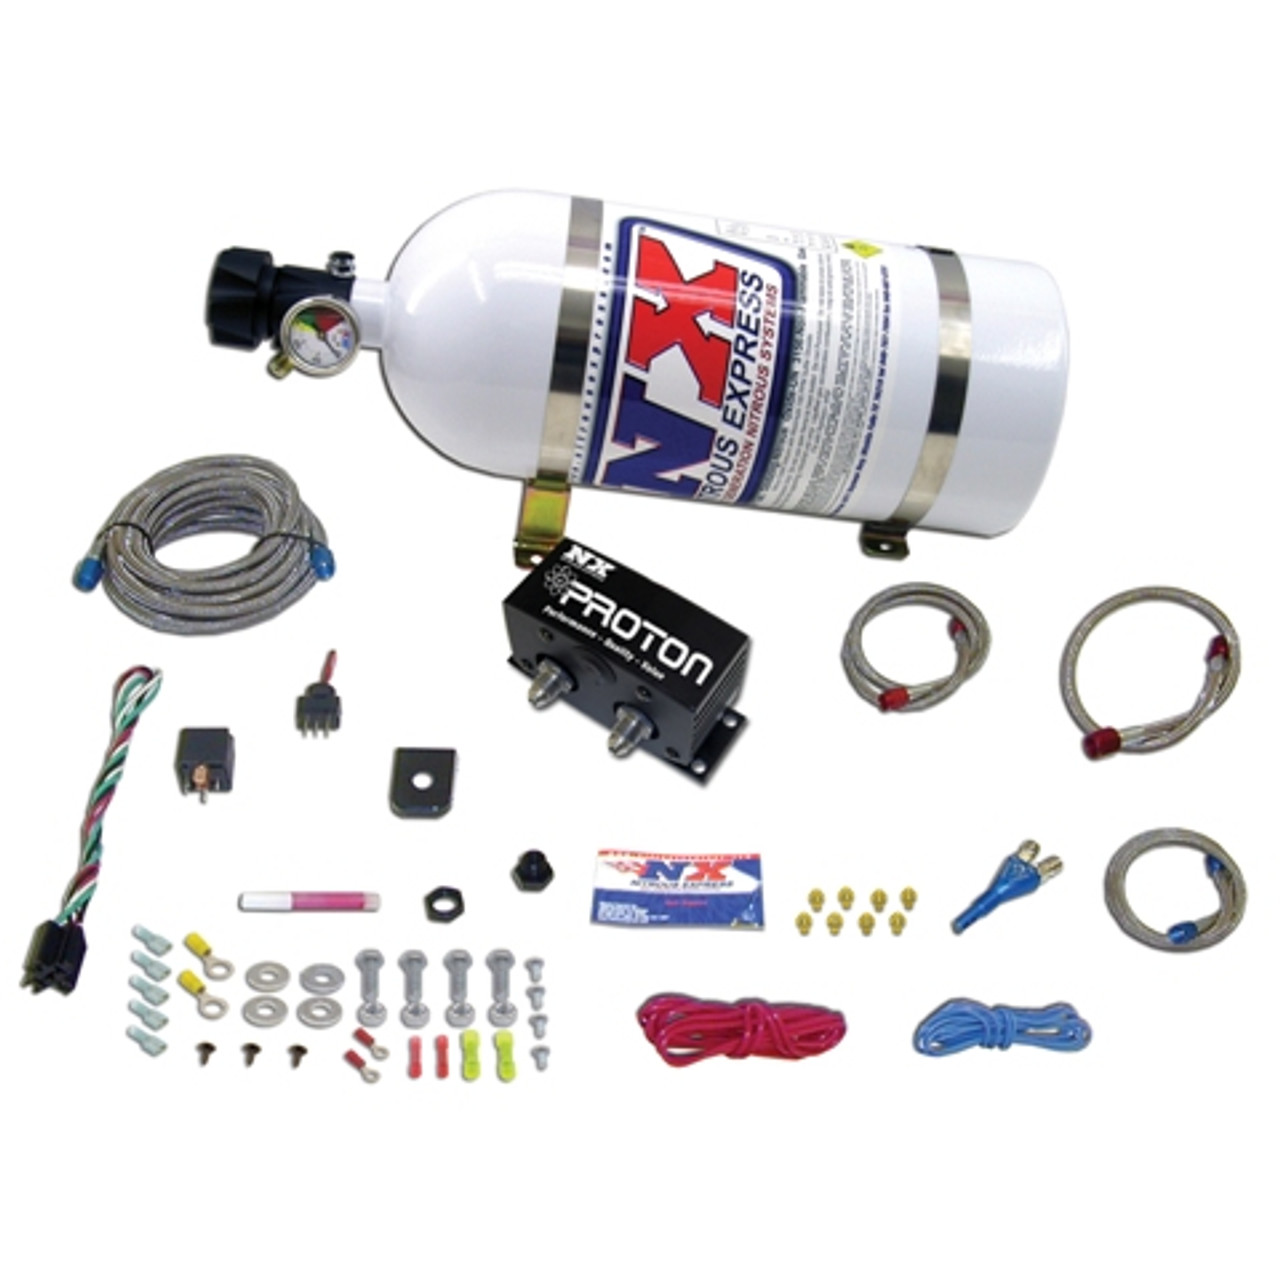 Less Bottle Nitrous Express 20421-00 Proton Plus Nitrous System